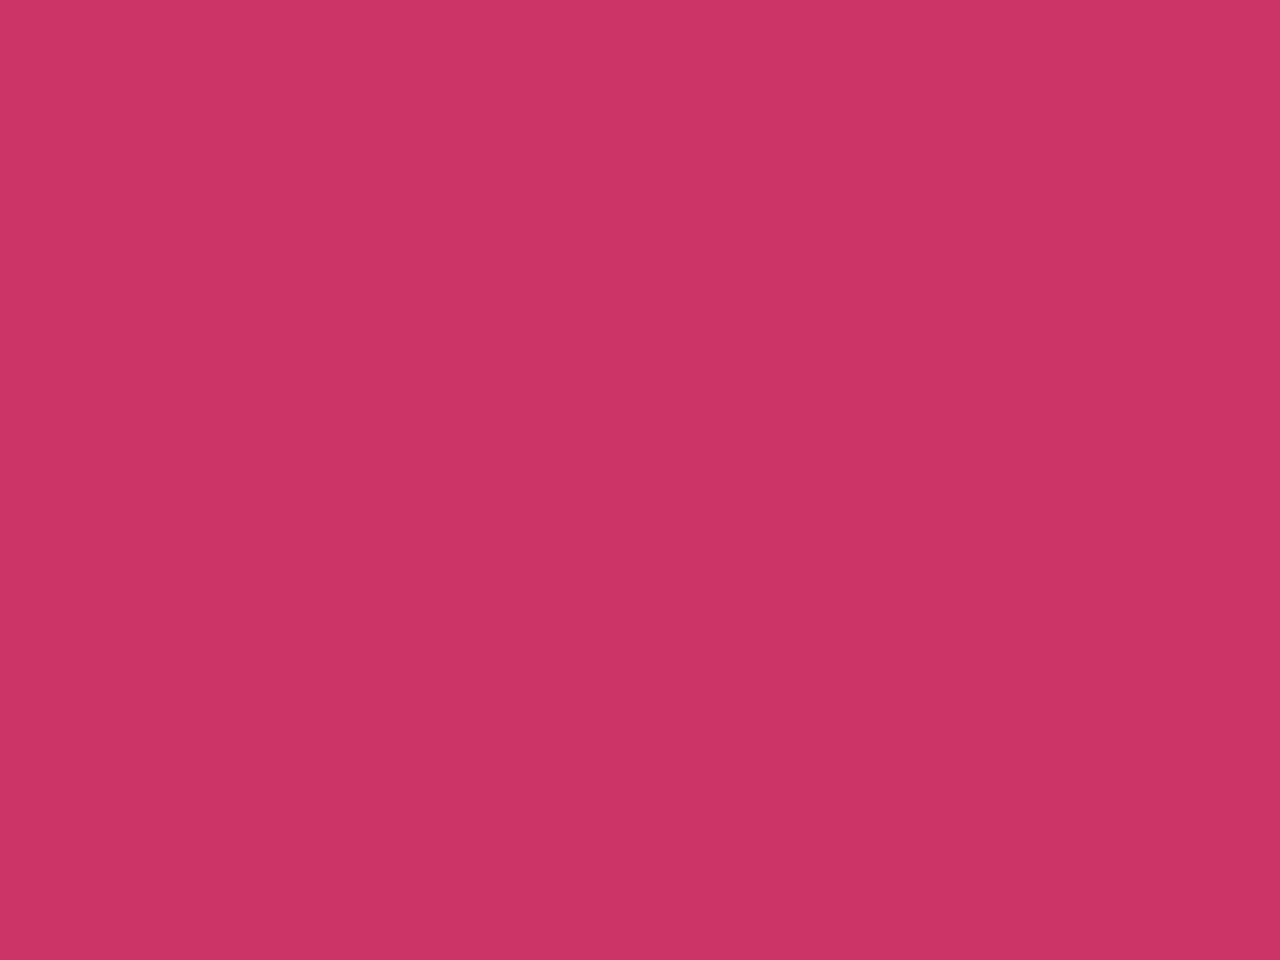 1280x960 Steel Pink Solid Color Background